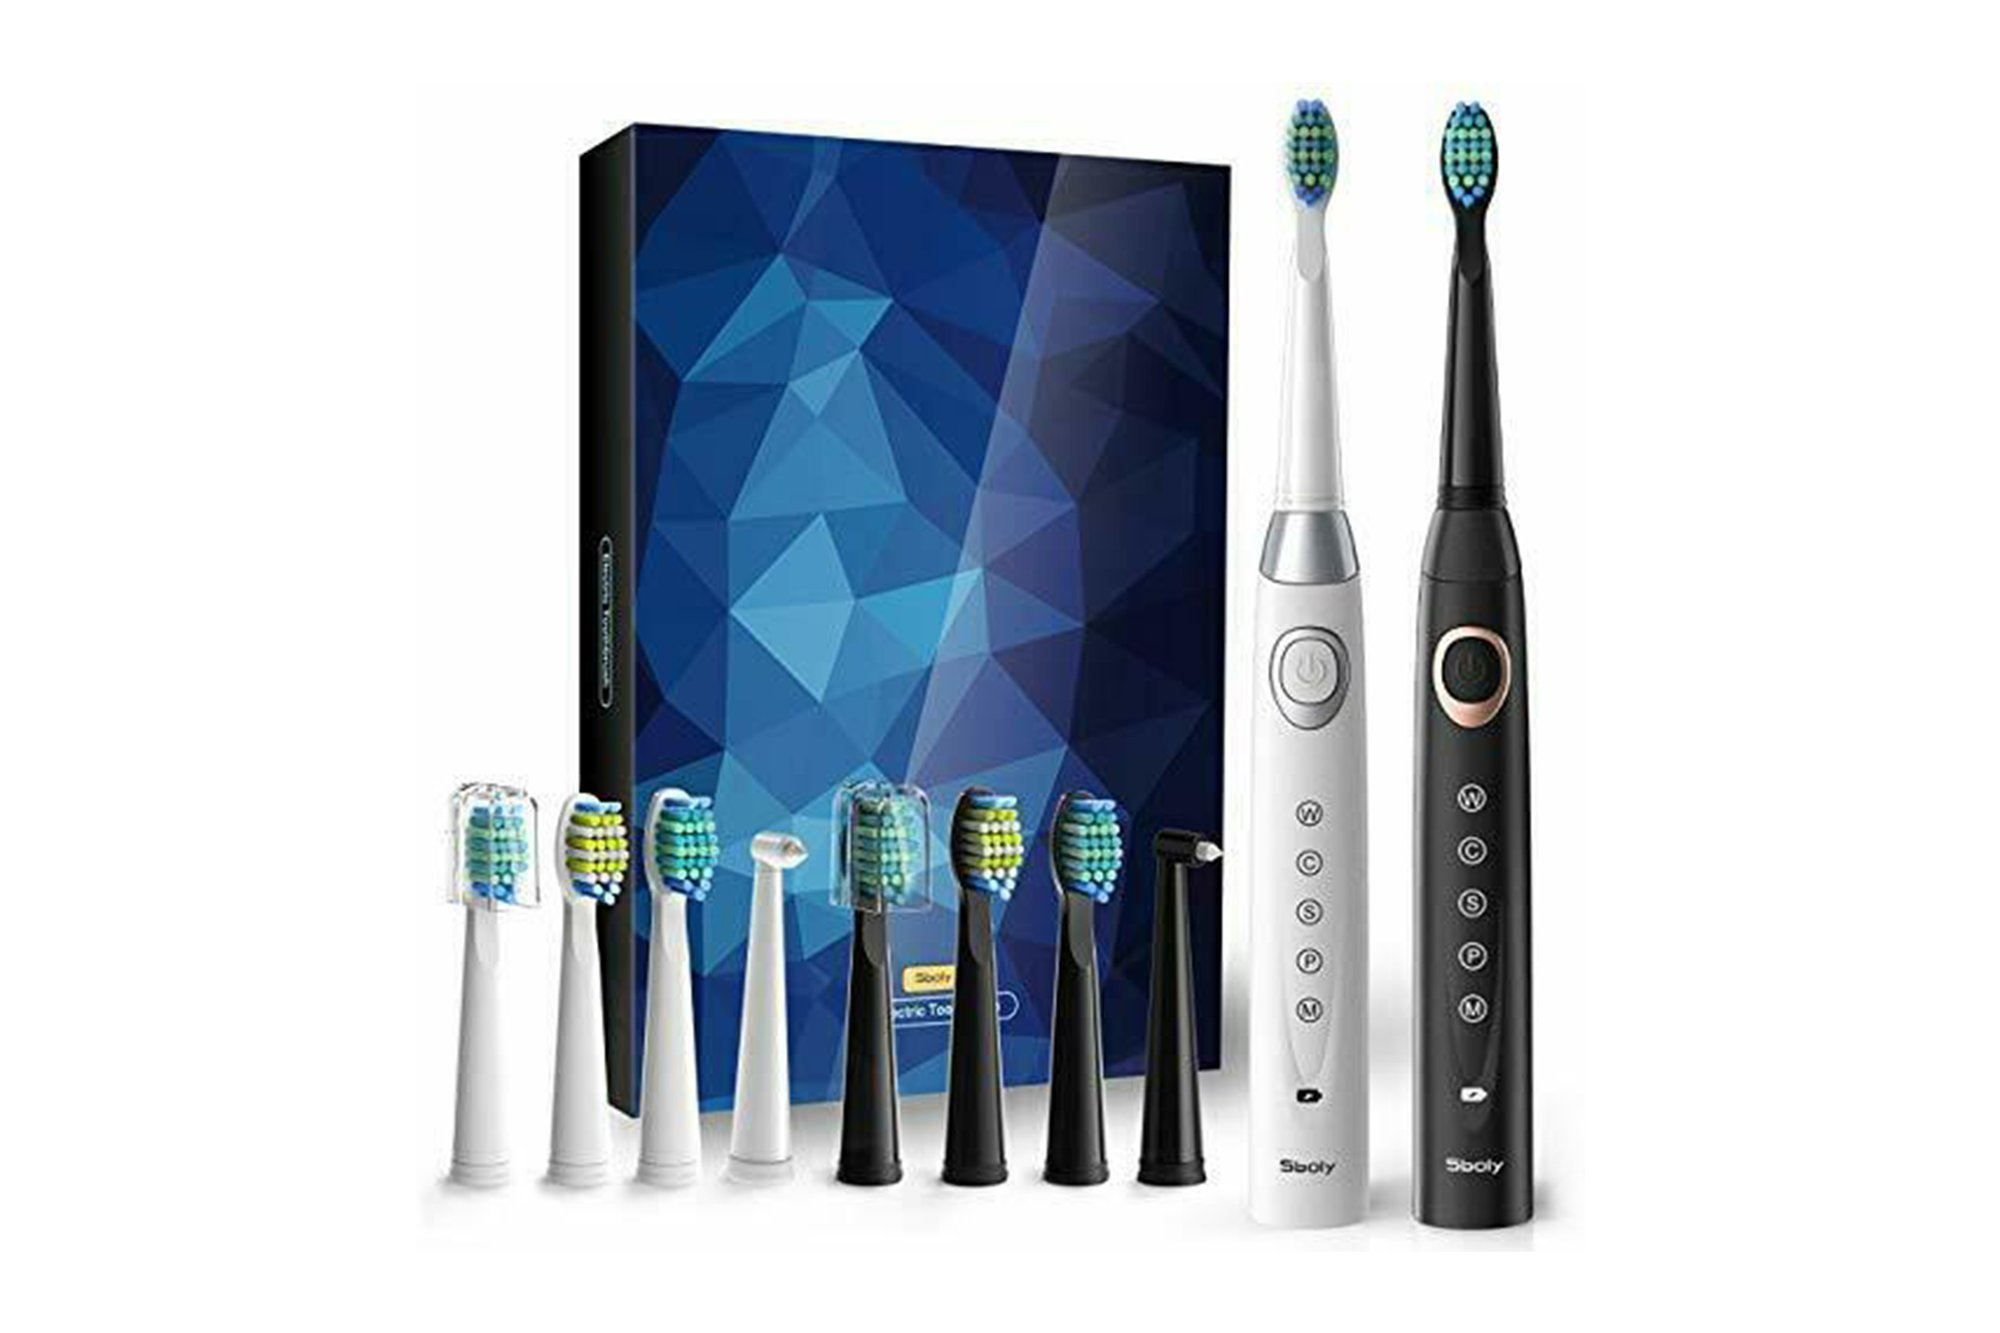 2x SBOLY 508 Sonic electric toothbrushes (Black and White)